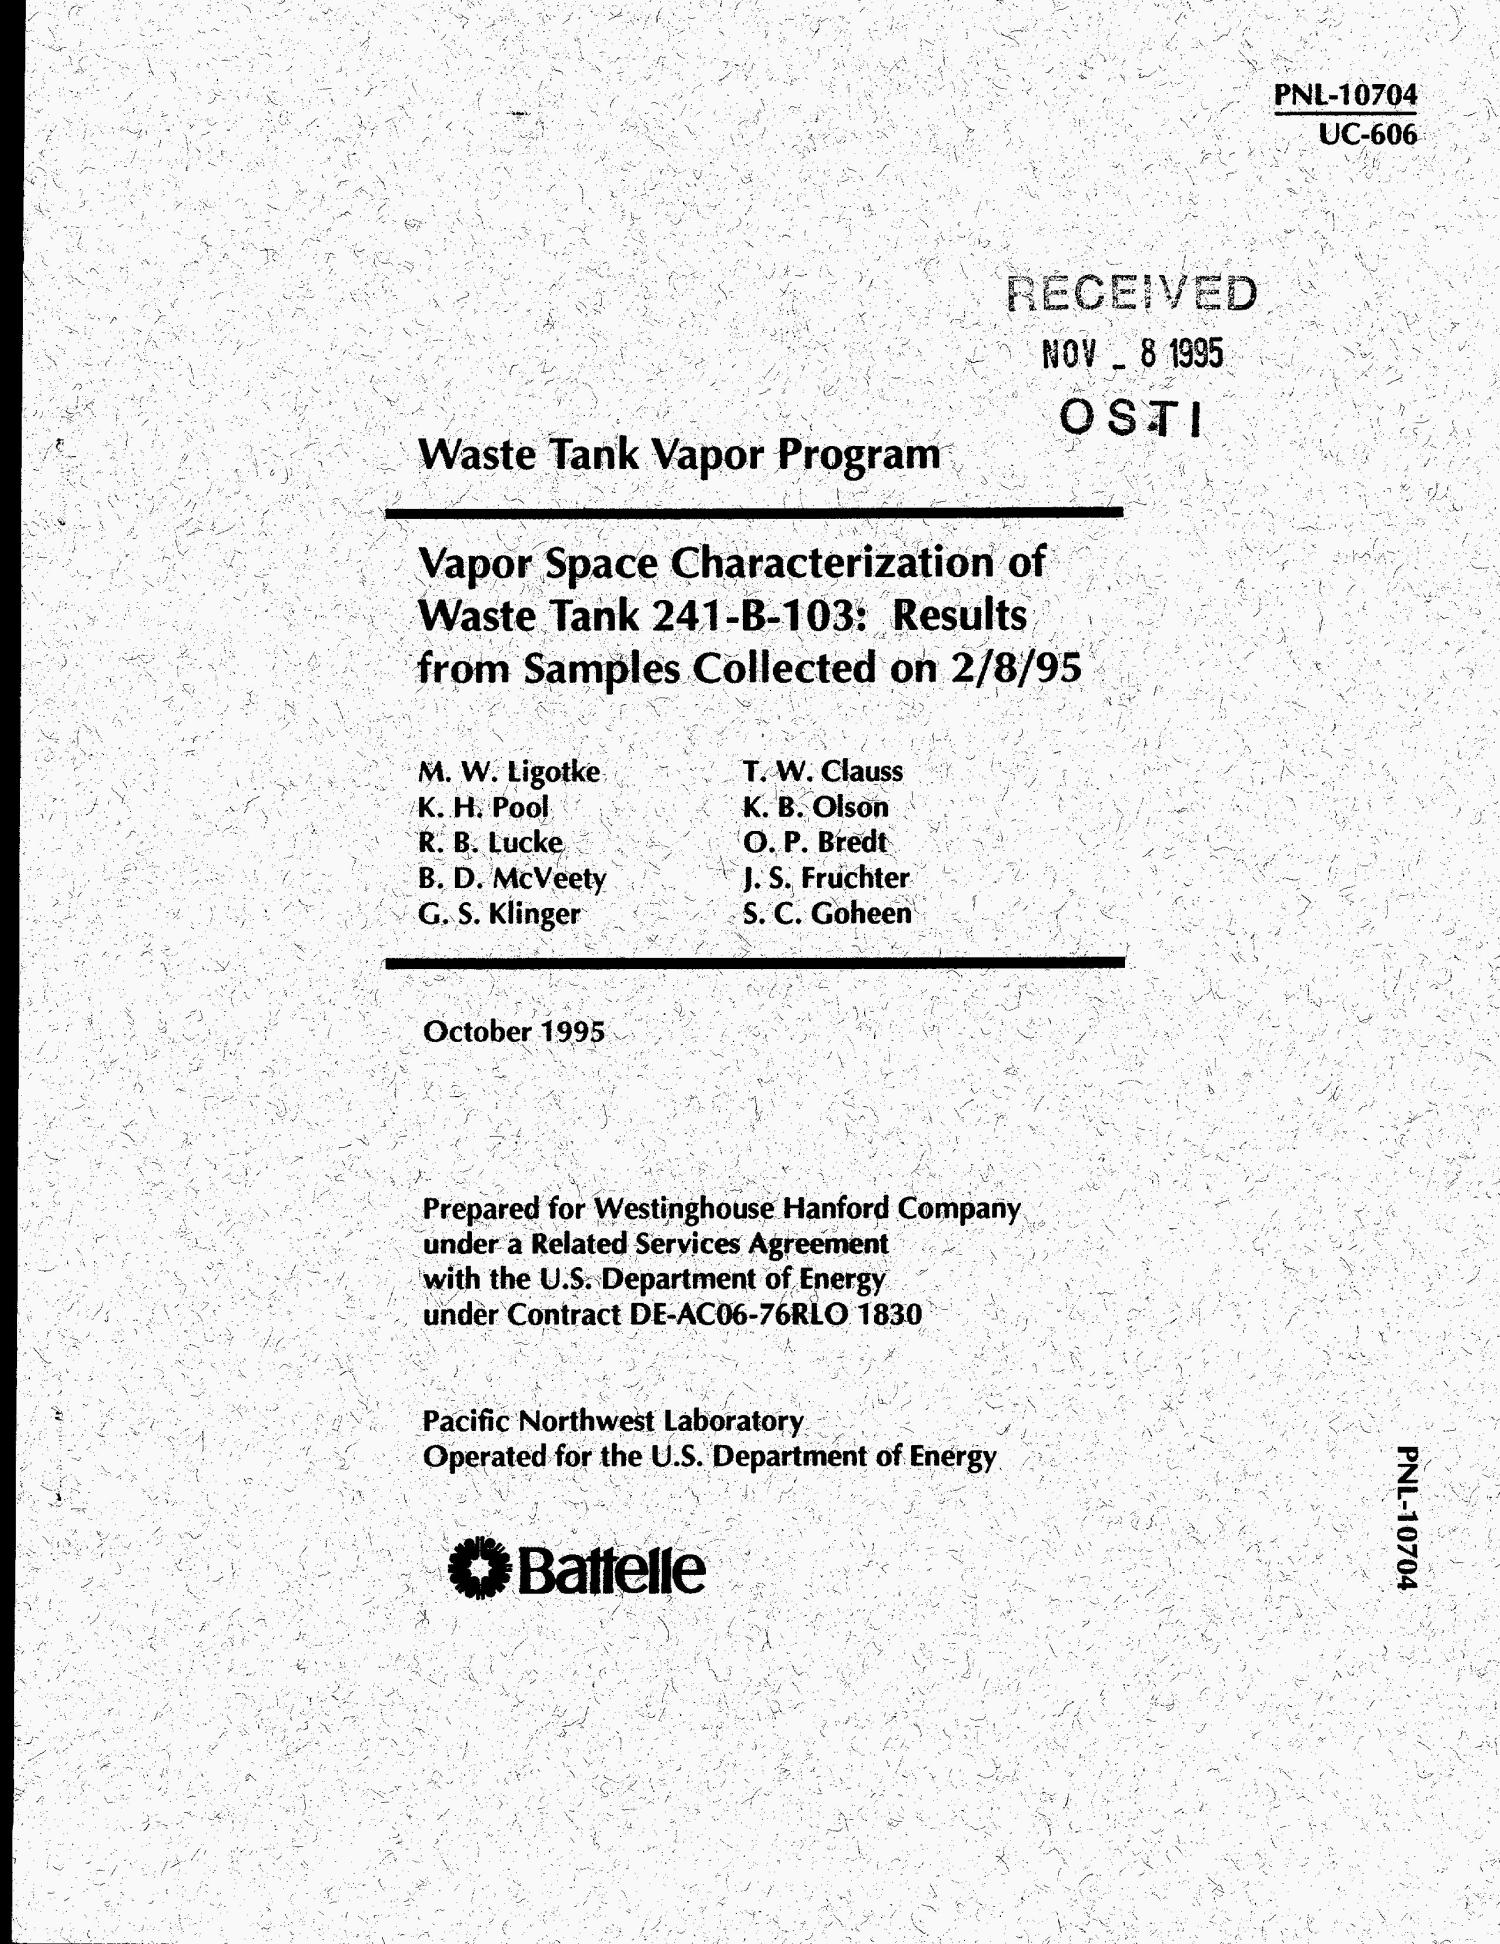 Vapor space characterization of waste Tank 241-B-103: Results from samples collected on 2/8/95                                                                                                      [Sequence #]: 1 of 45